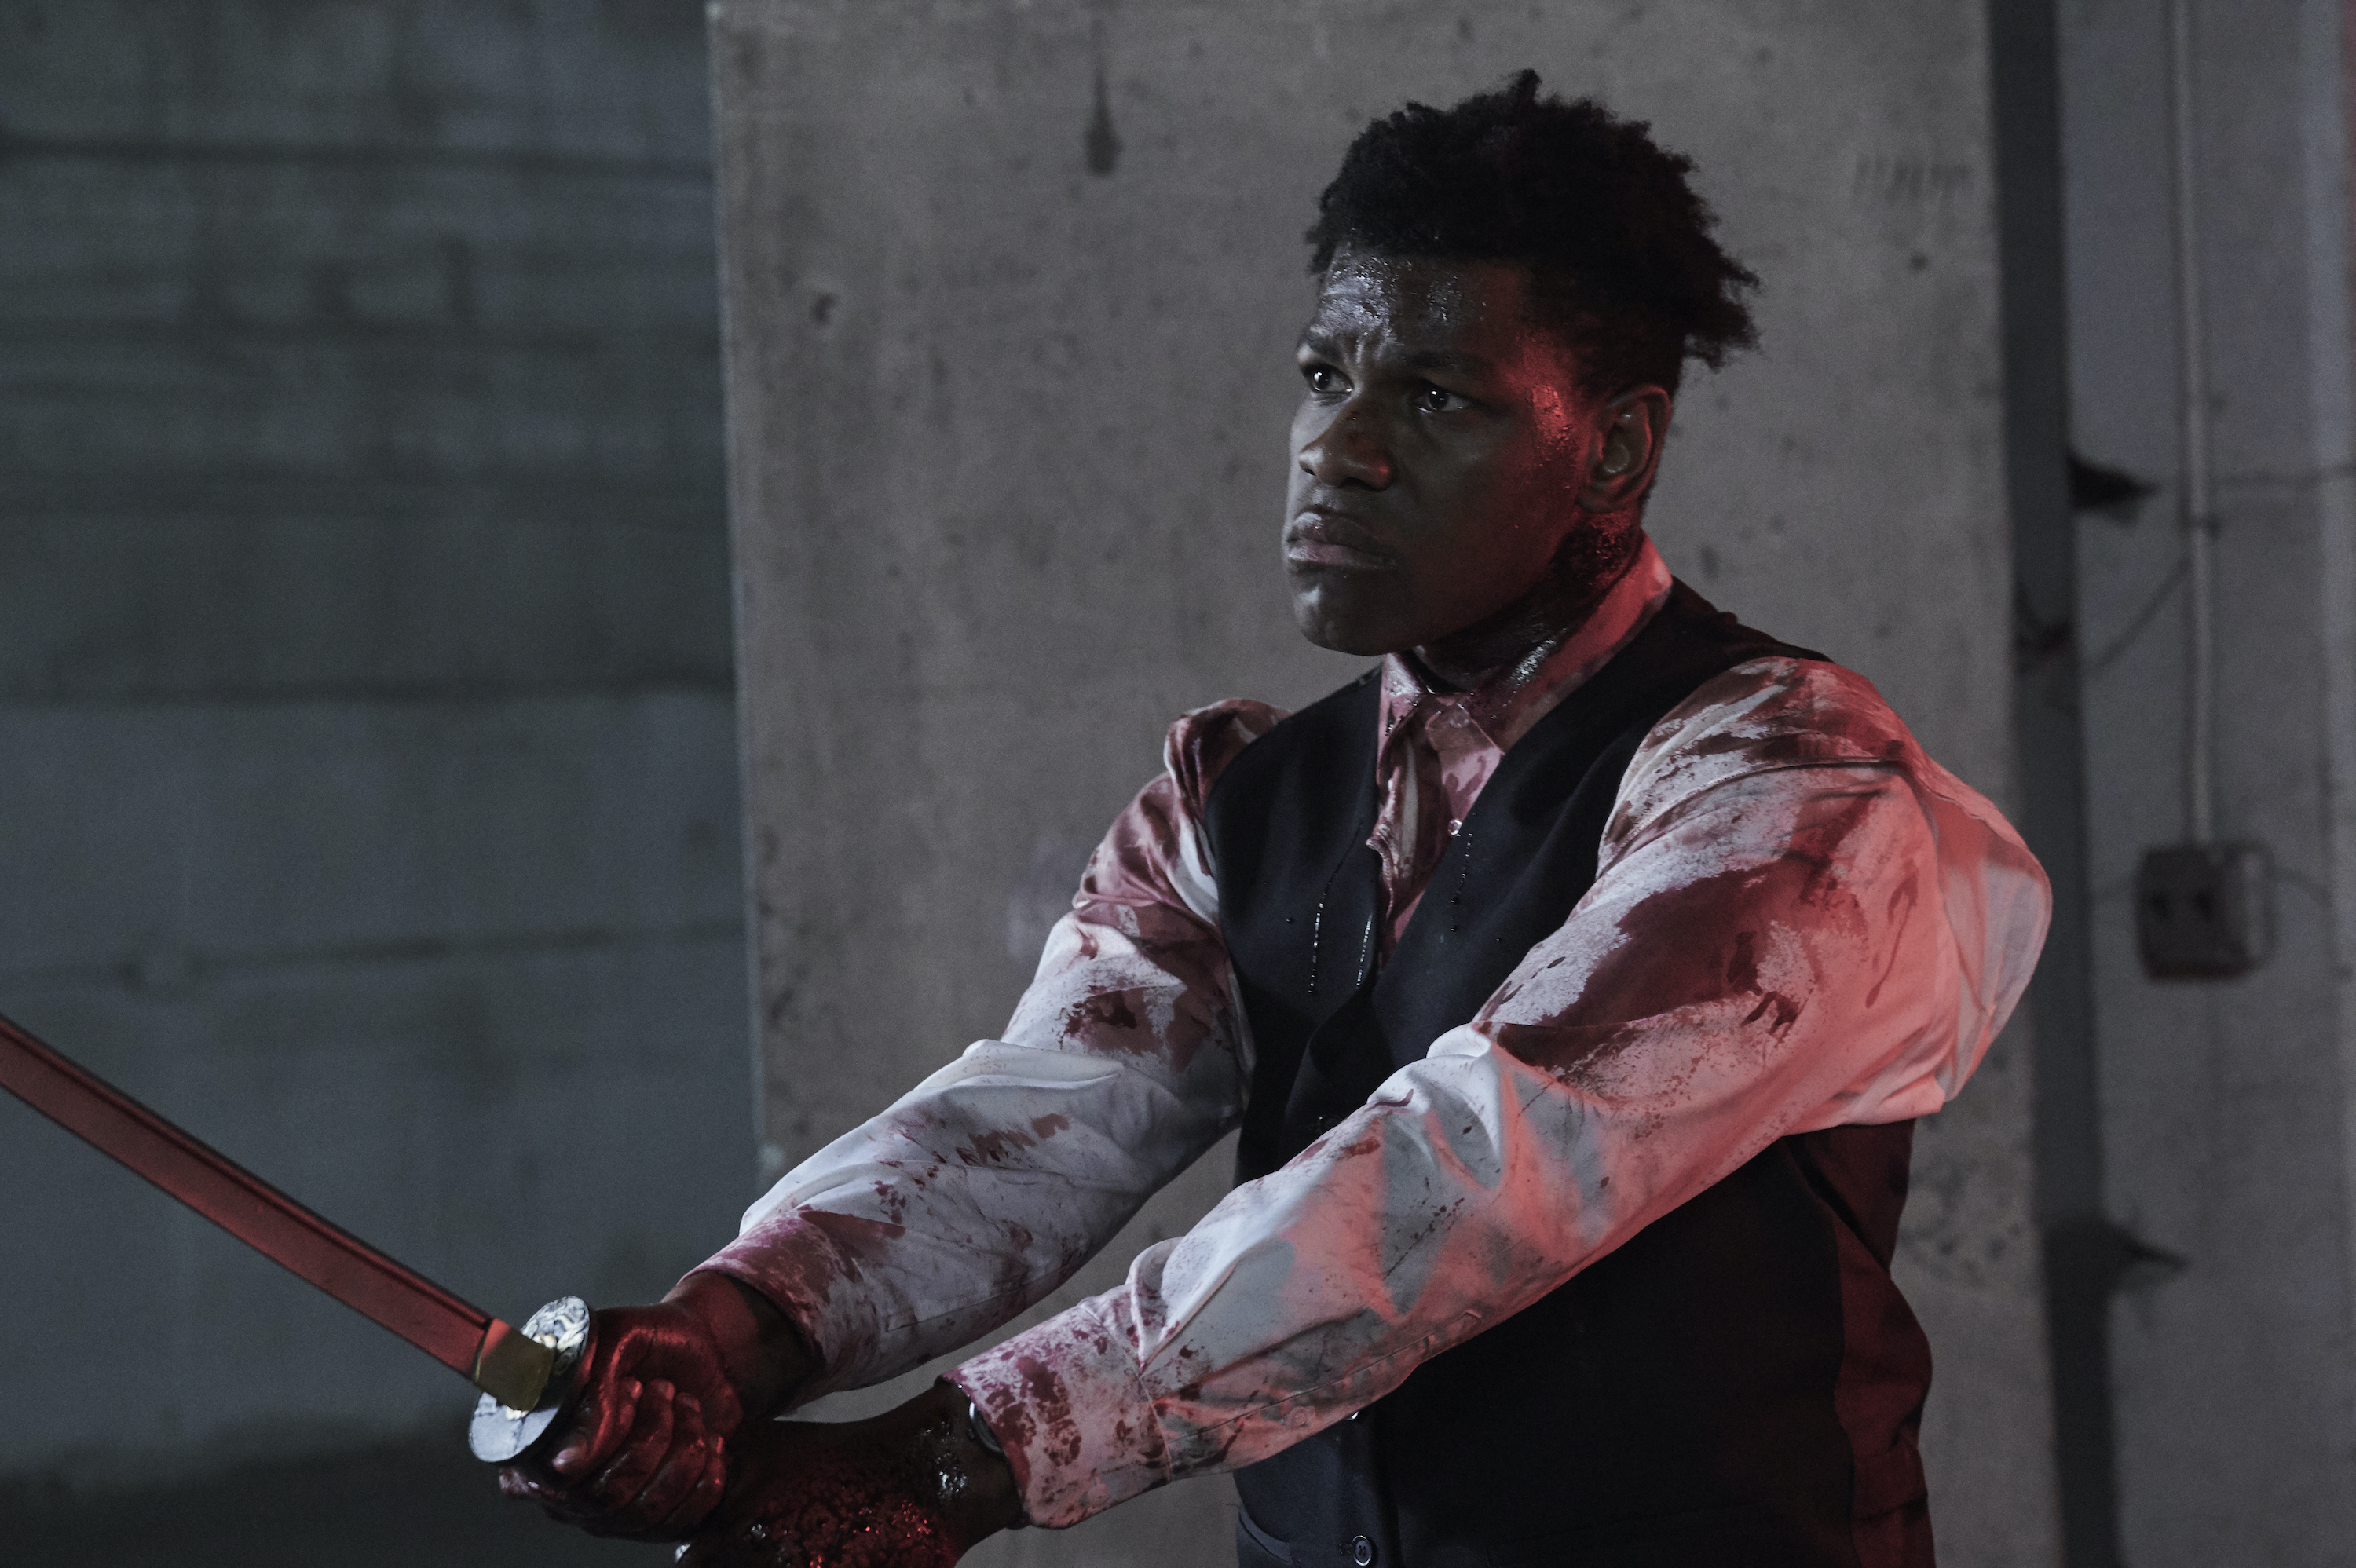 A blood-covered John Boyega looks oddly solemn while wielding a katana